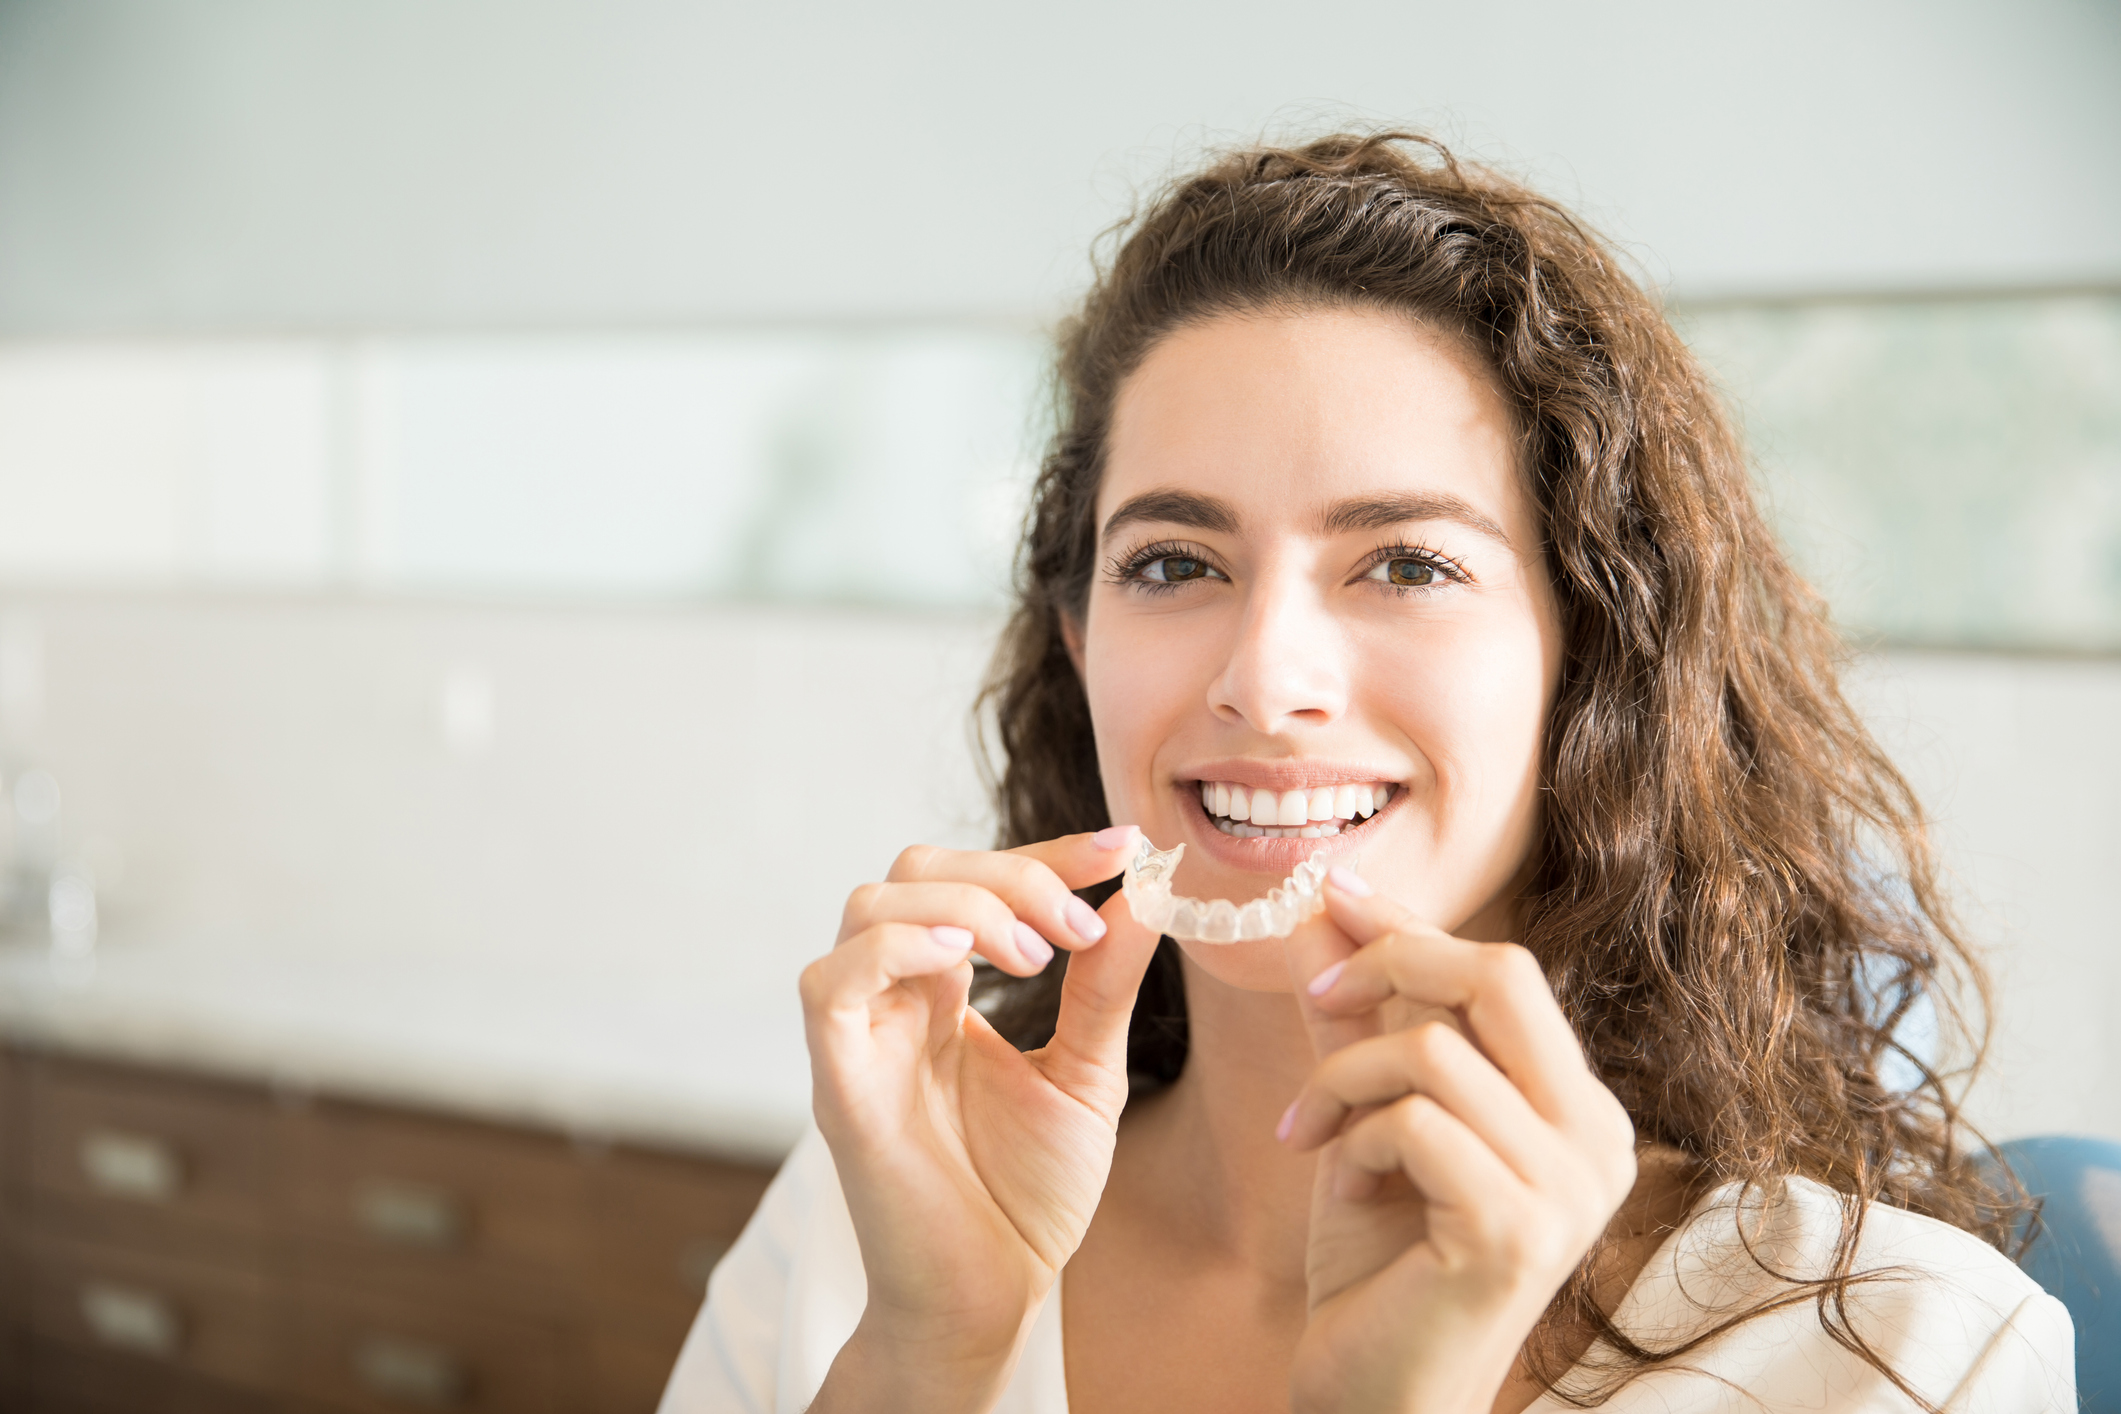 I've Been Told I Can't Have Invisalign. What do I Do Now?